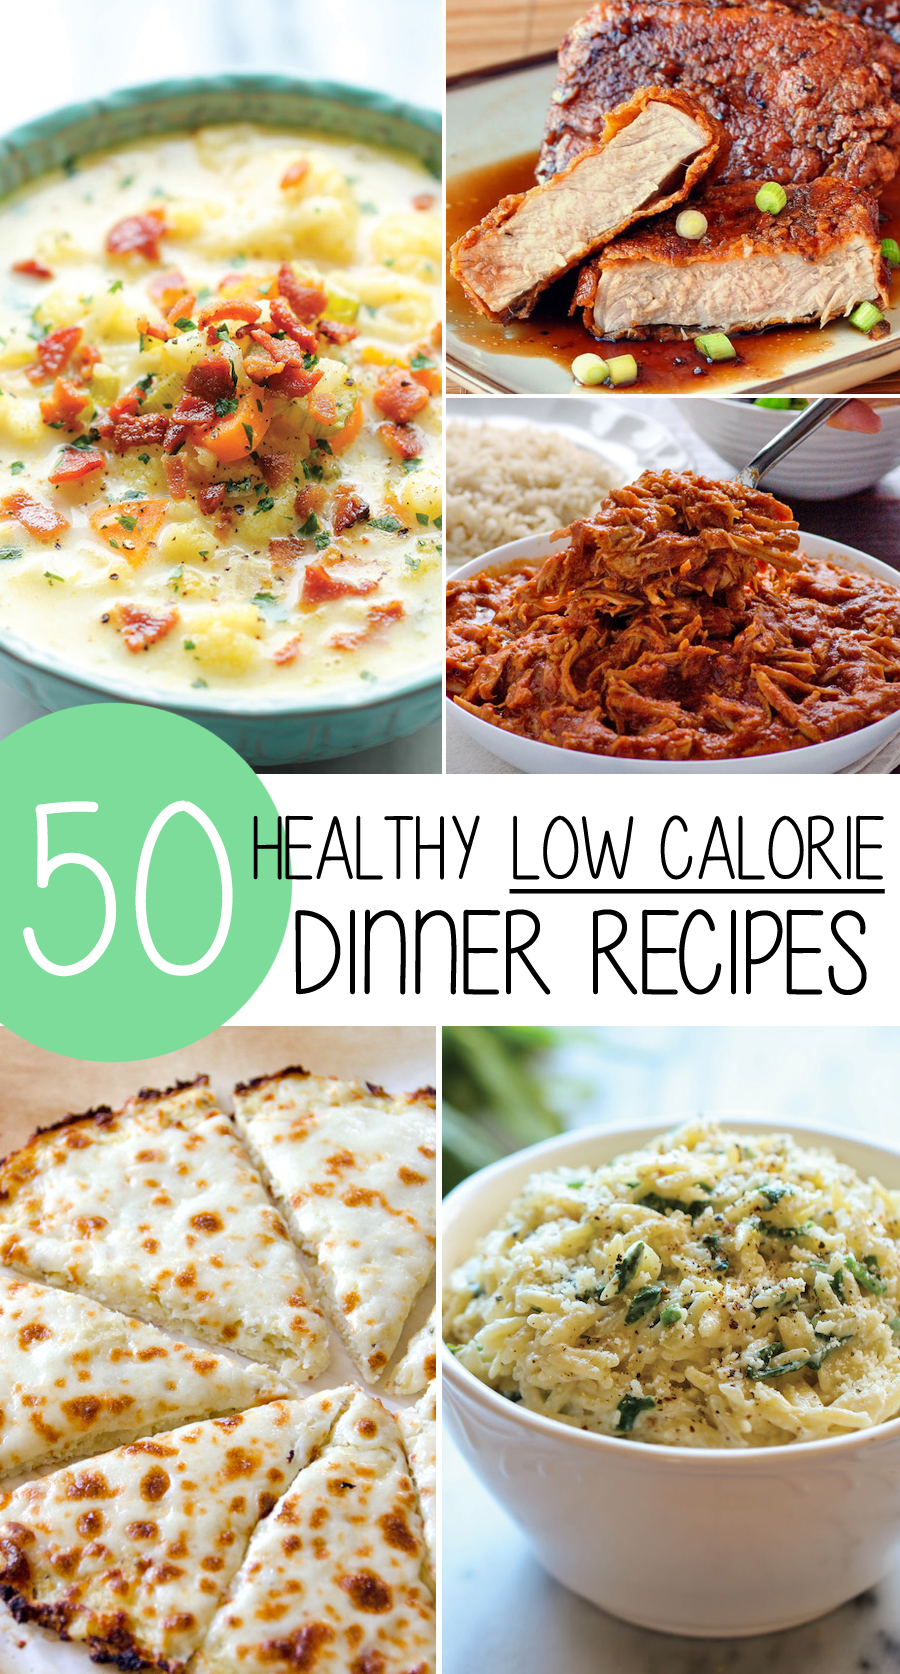 50 Healthy Low Calorie Dinner Recipes